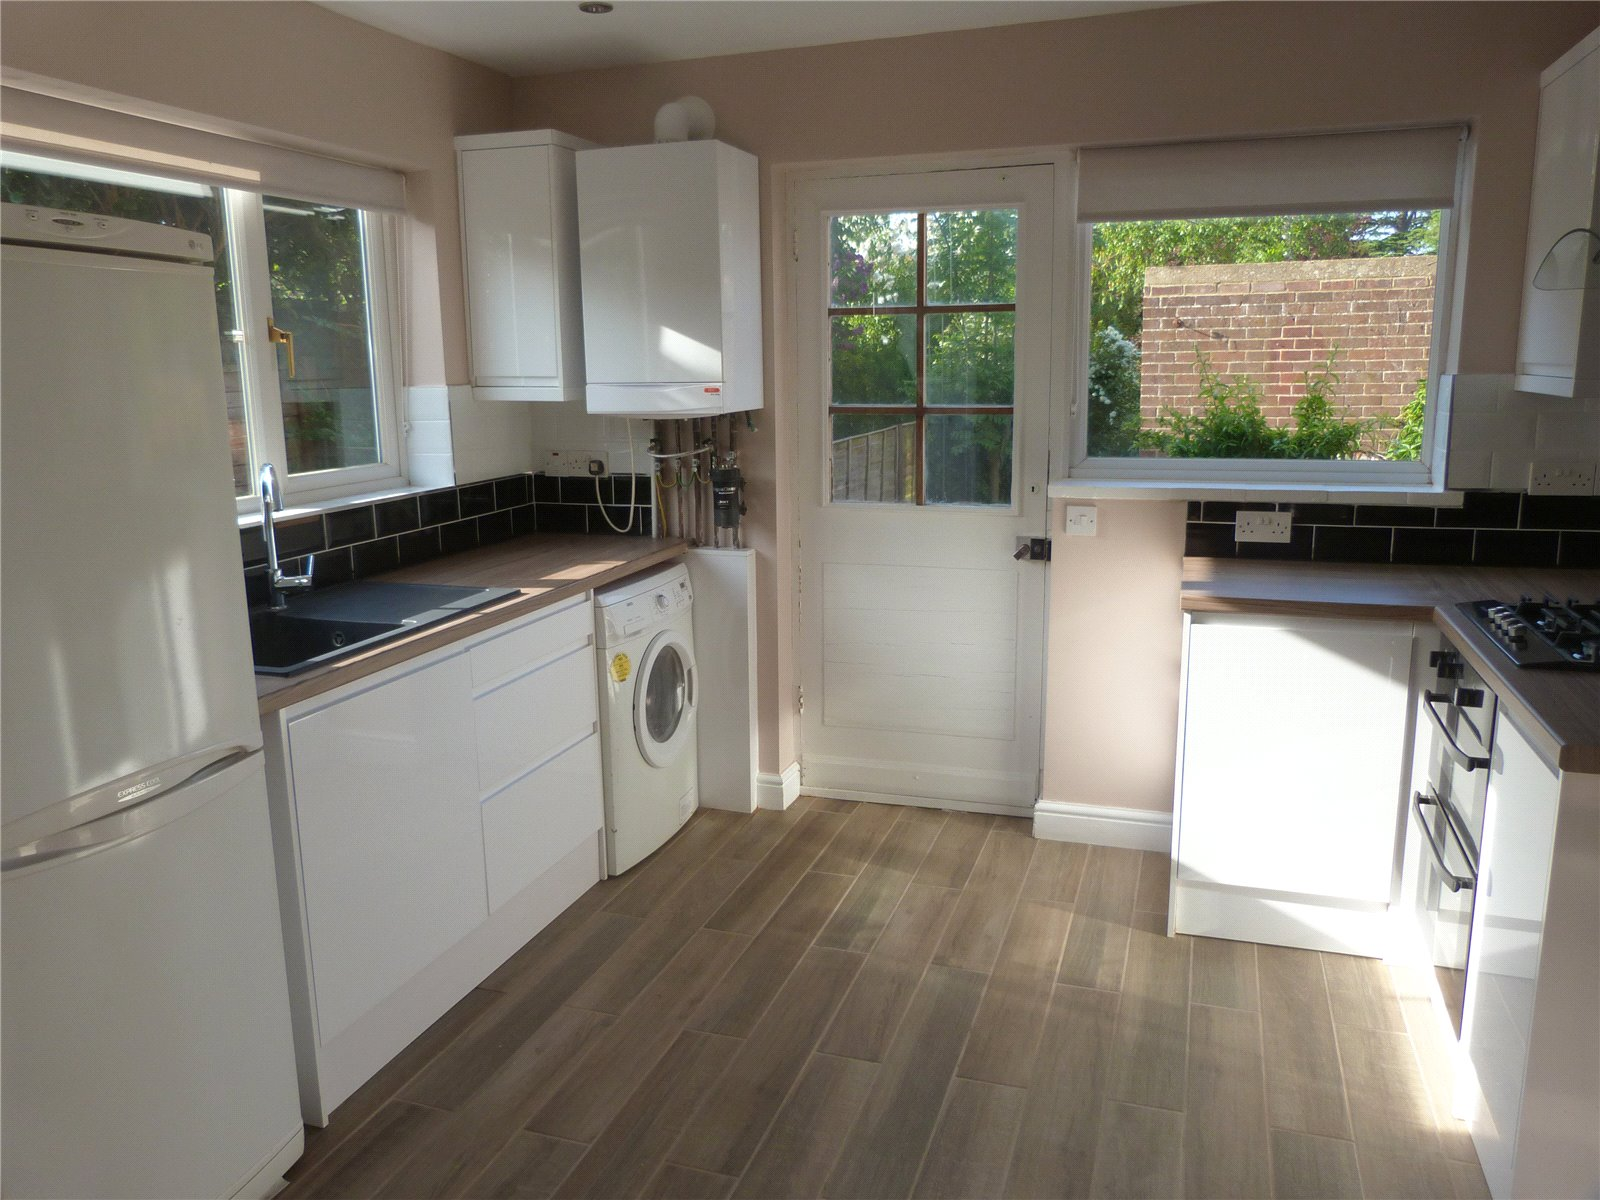 Parkers reading 1 bedroom house to rent in castle crescent - 1 bedroom house to rent in reading ...